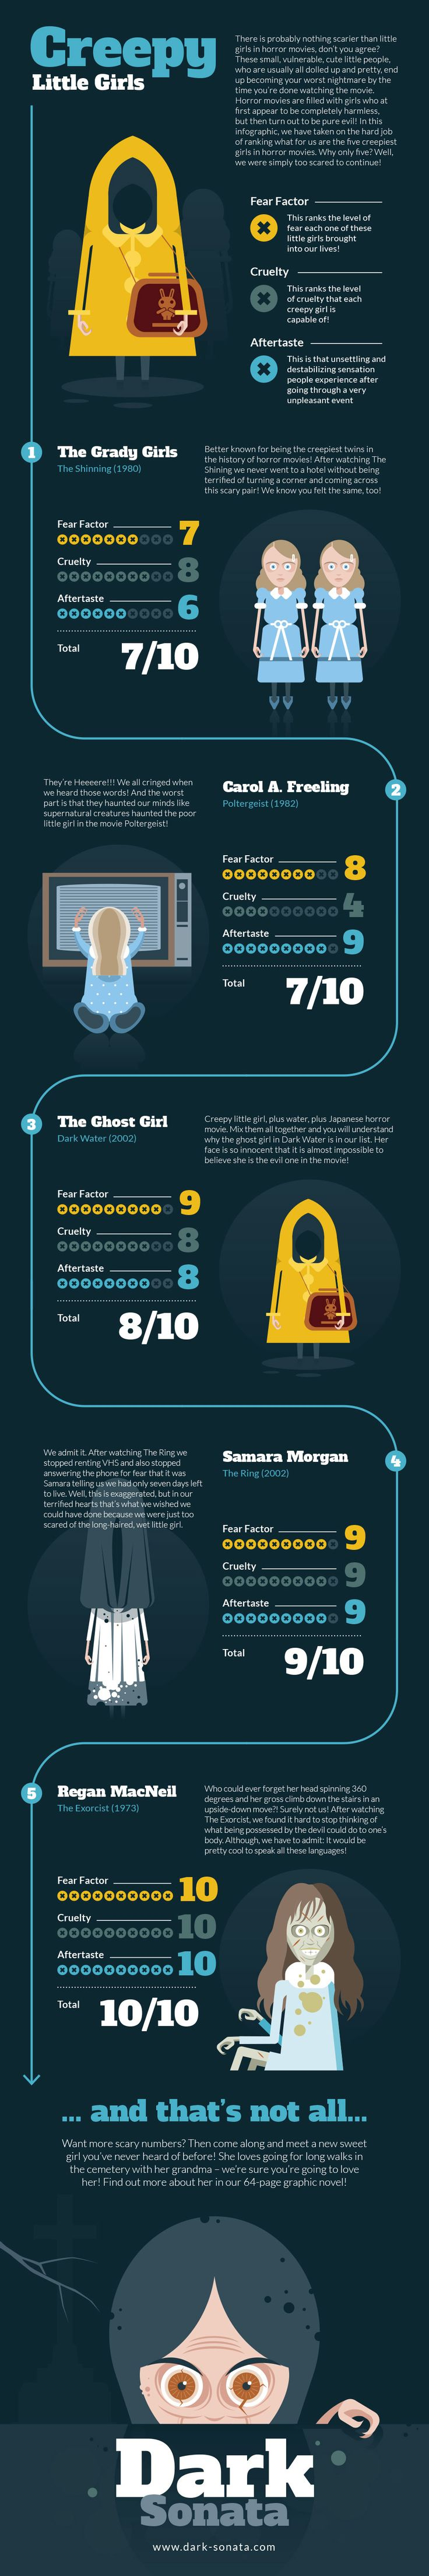 Infographic: Creepy Little Girls In Horror Movies